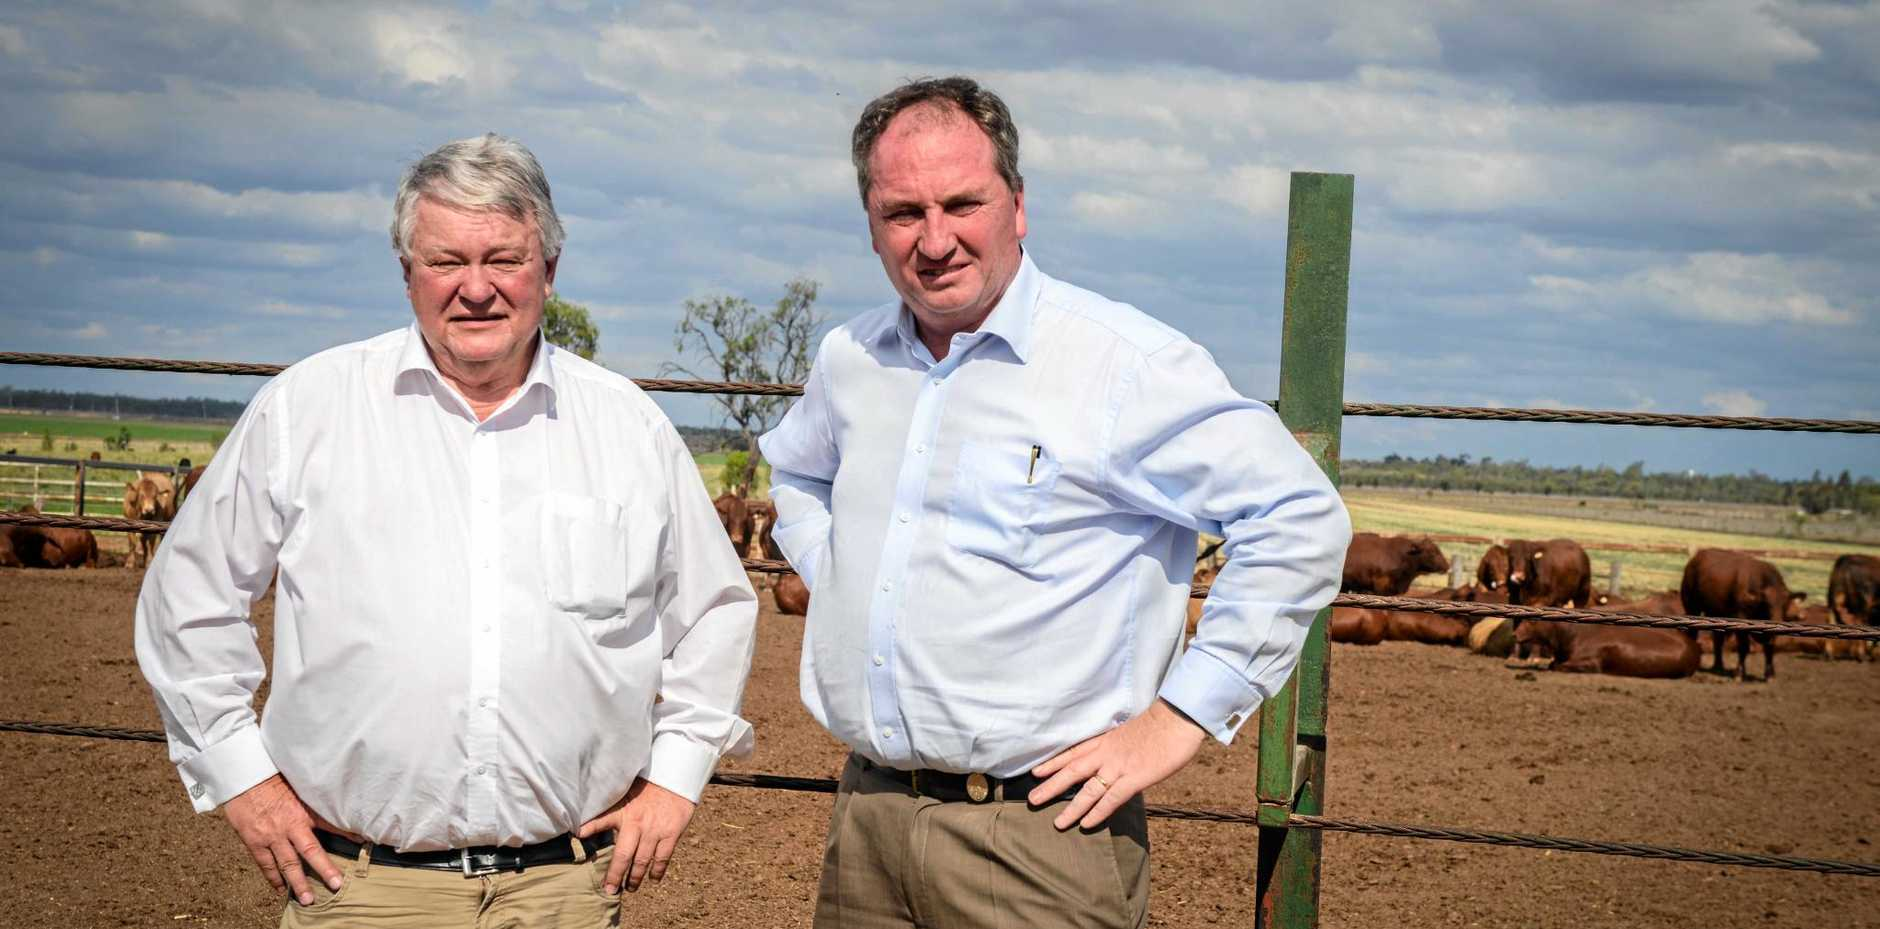 Ken O'Dowd and Barnaby Joyce announce $15 million in loans funding to support struggling Queensland farmers.